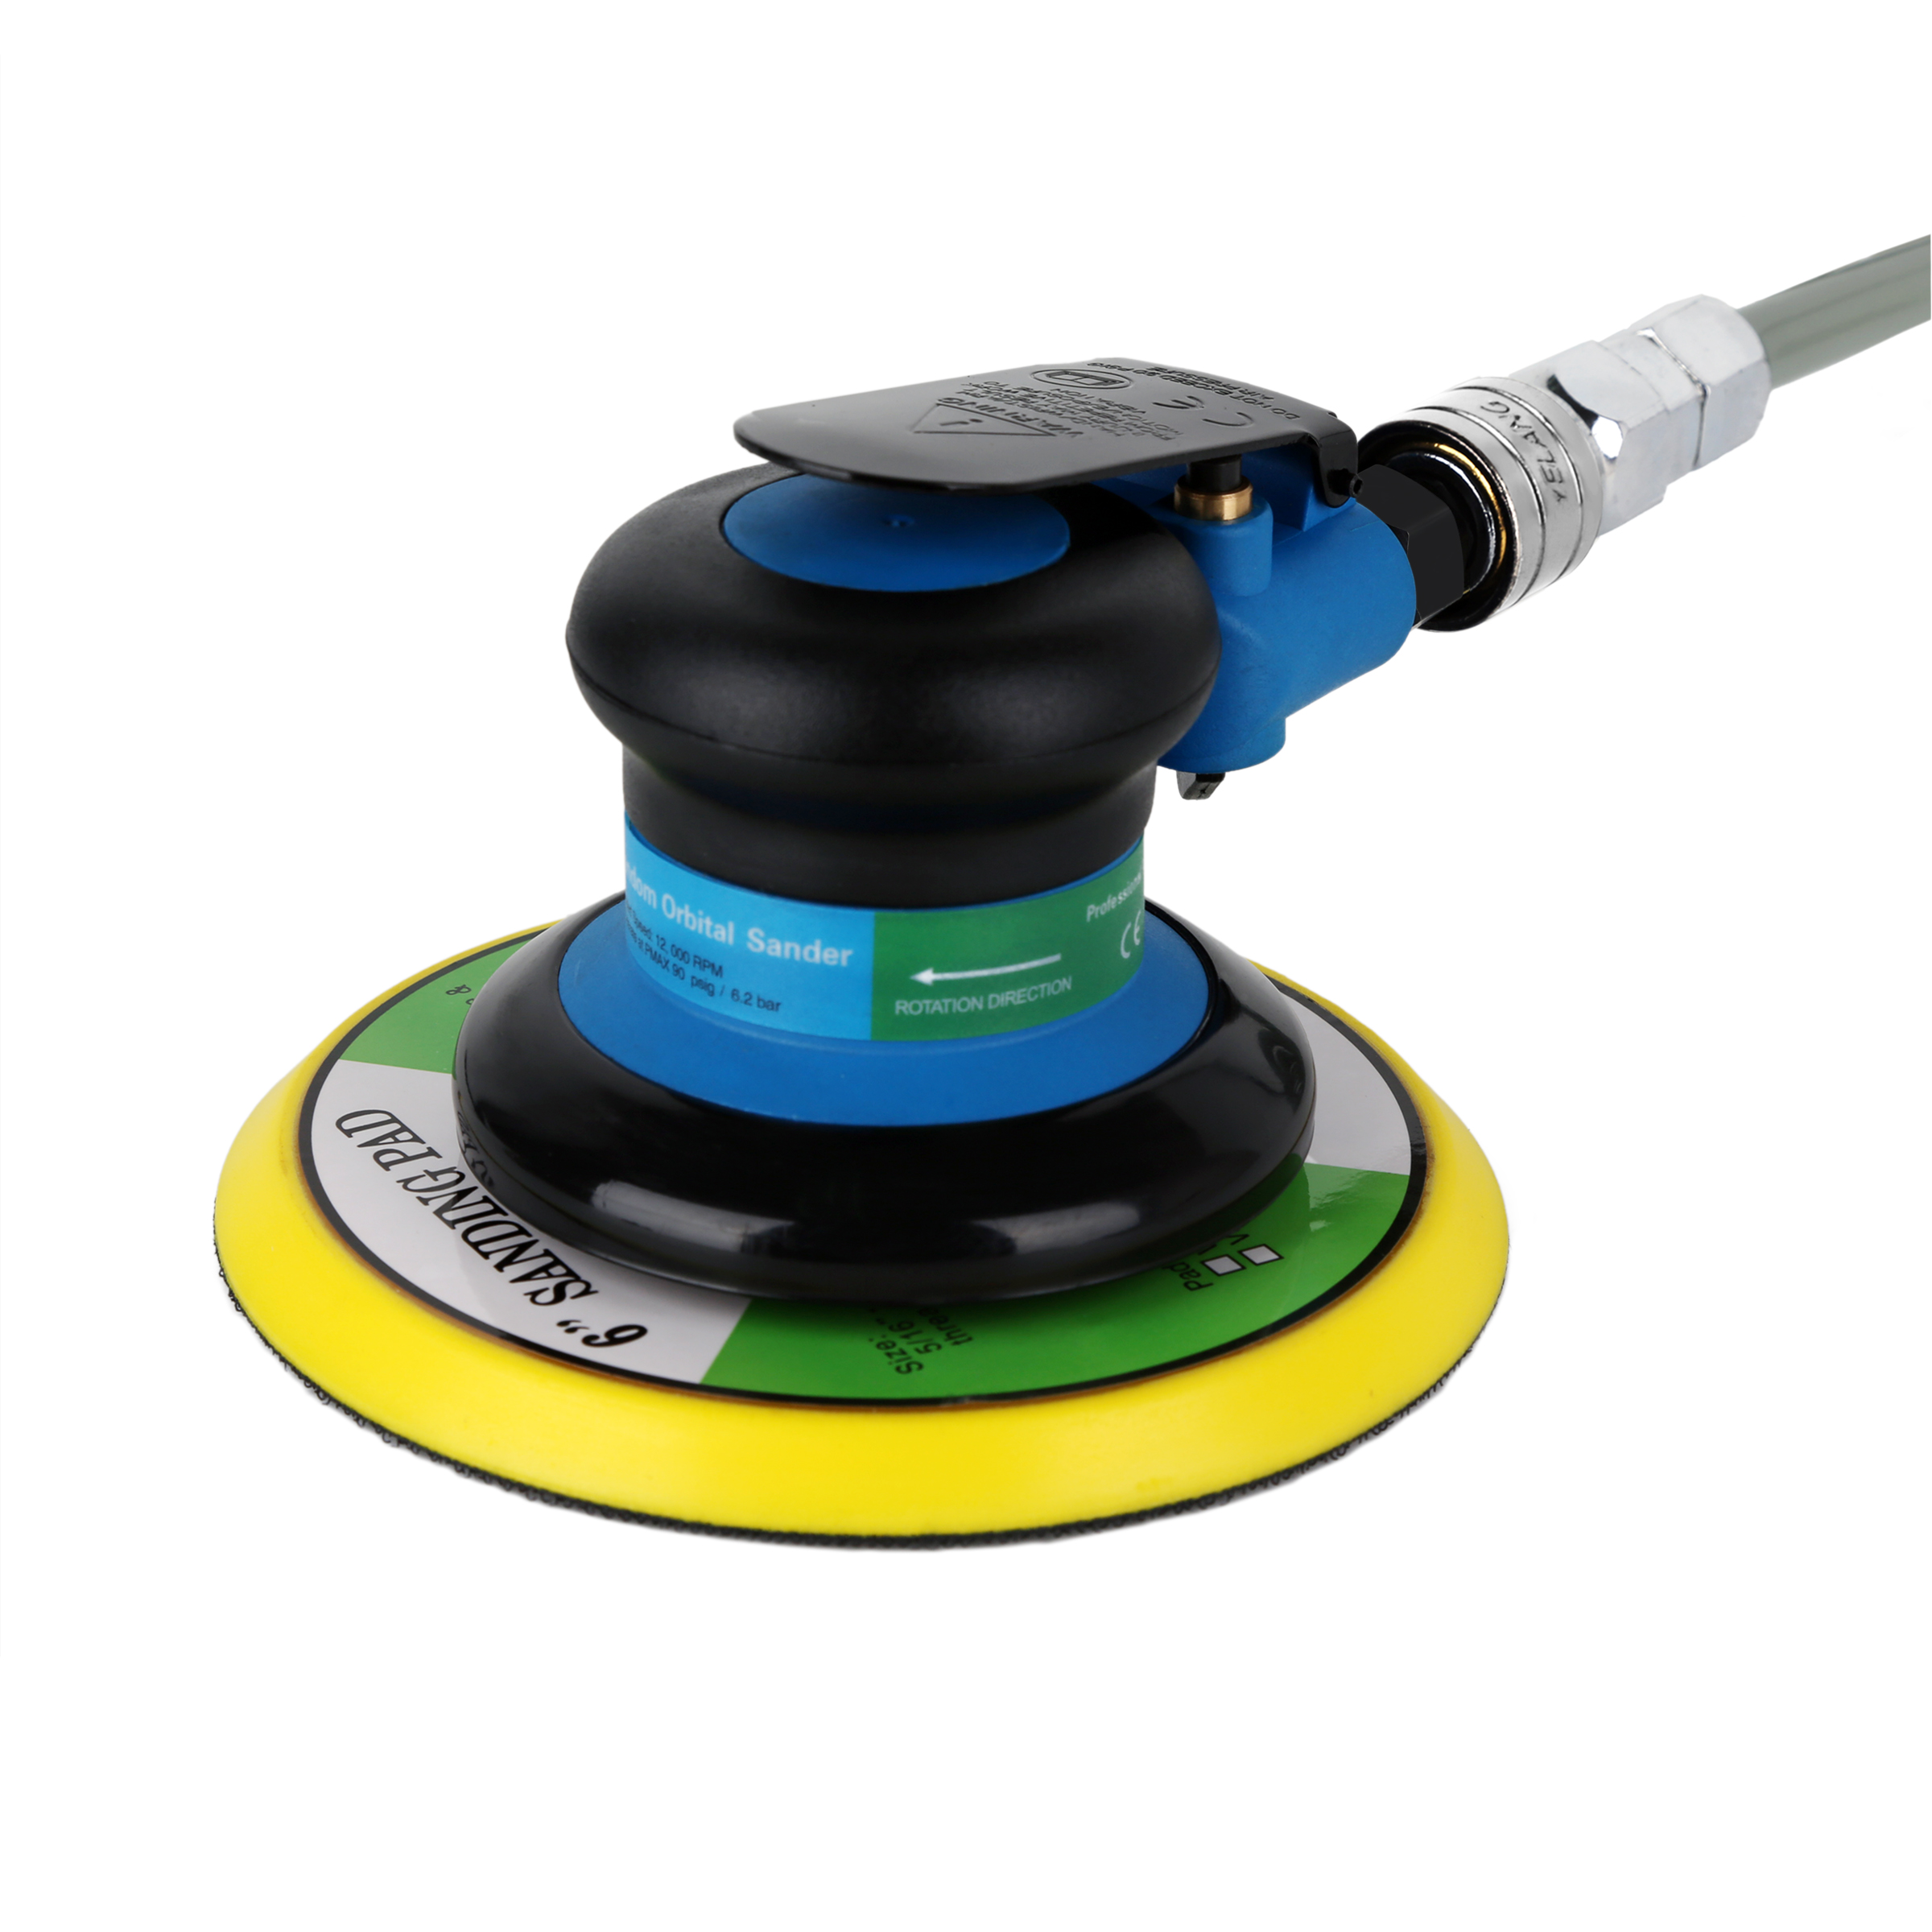 Electric Machine Care Tool Load 12000RPM Sander Polisher 6 Polisher 152mm No Woodworking Paint STARY Car Speed Polishing Inch